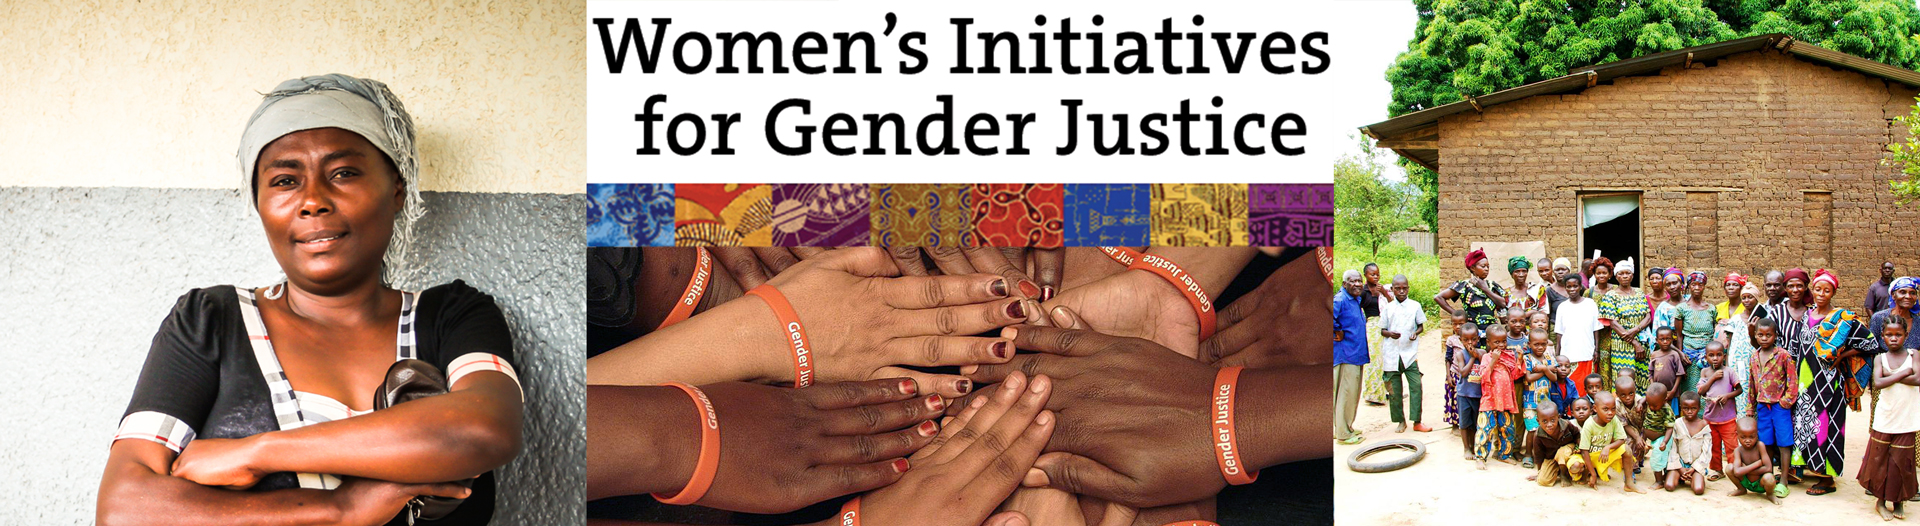 Women's Initiatives for Gender Justice logo